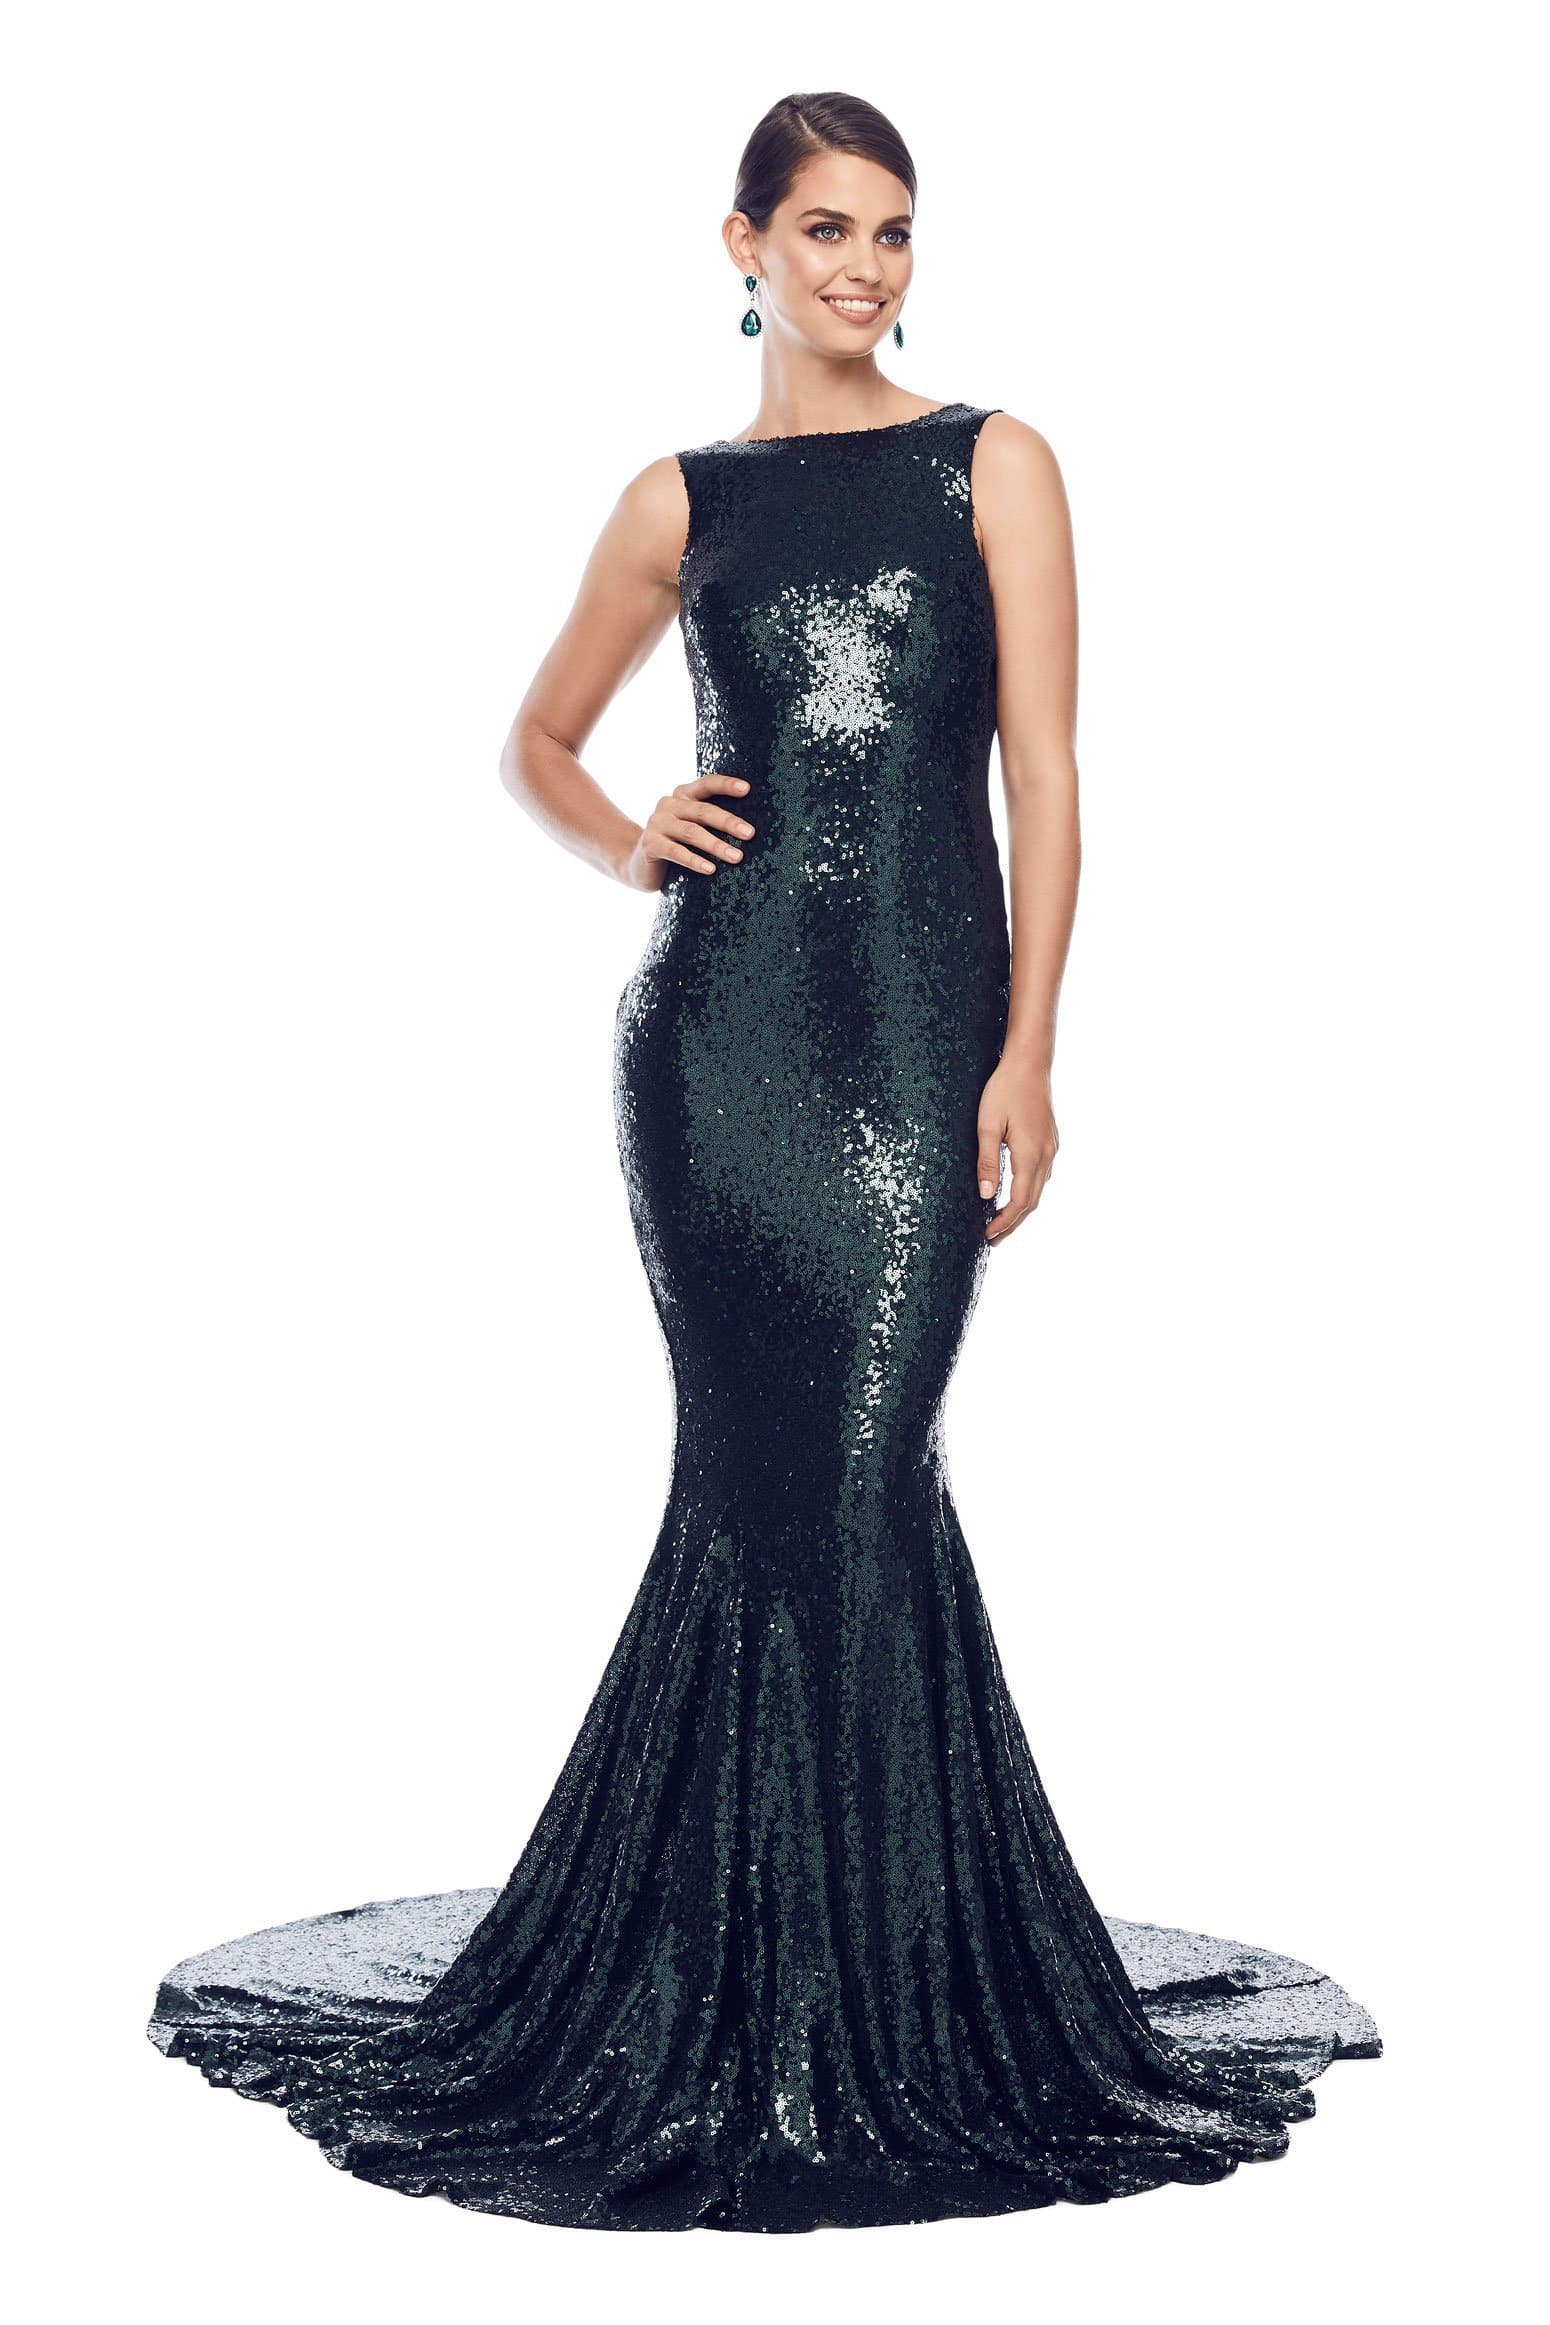 Stone Sequin Gown - Emerald